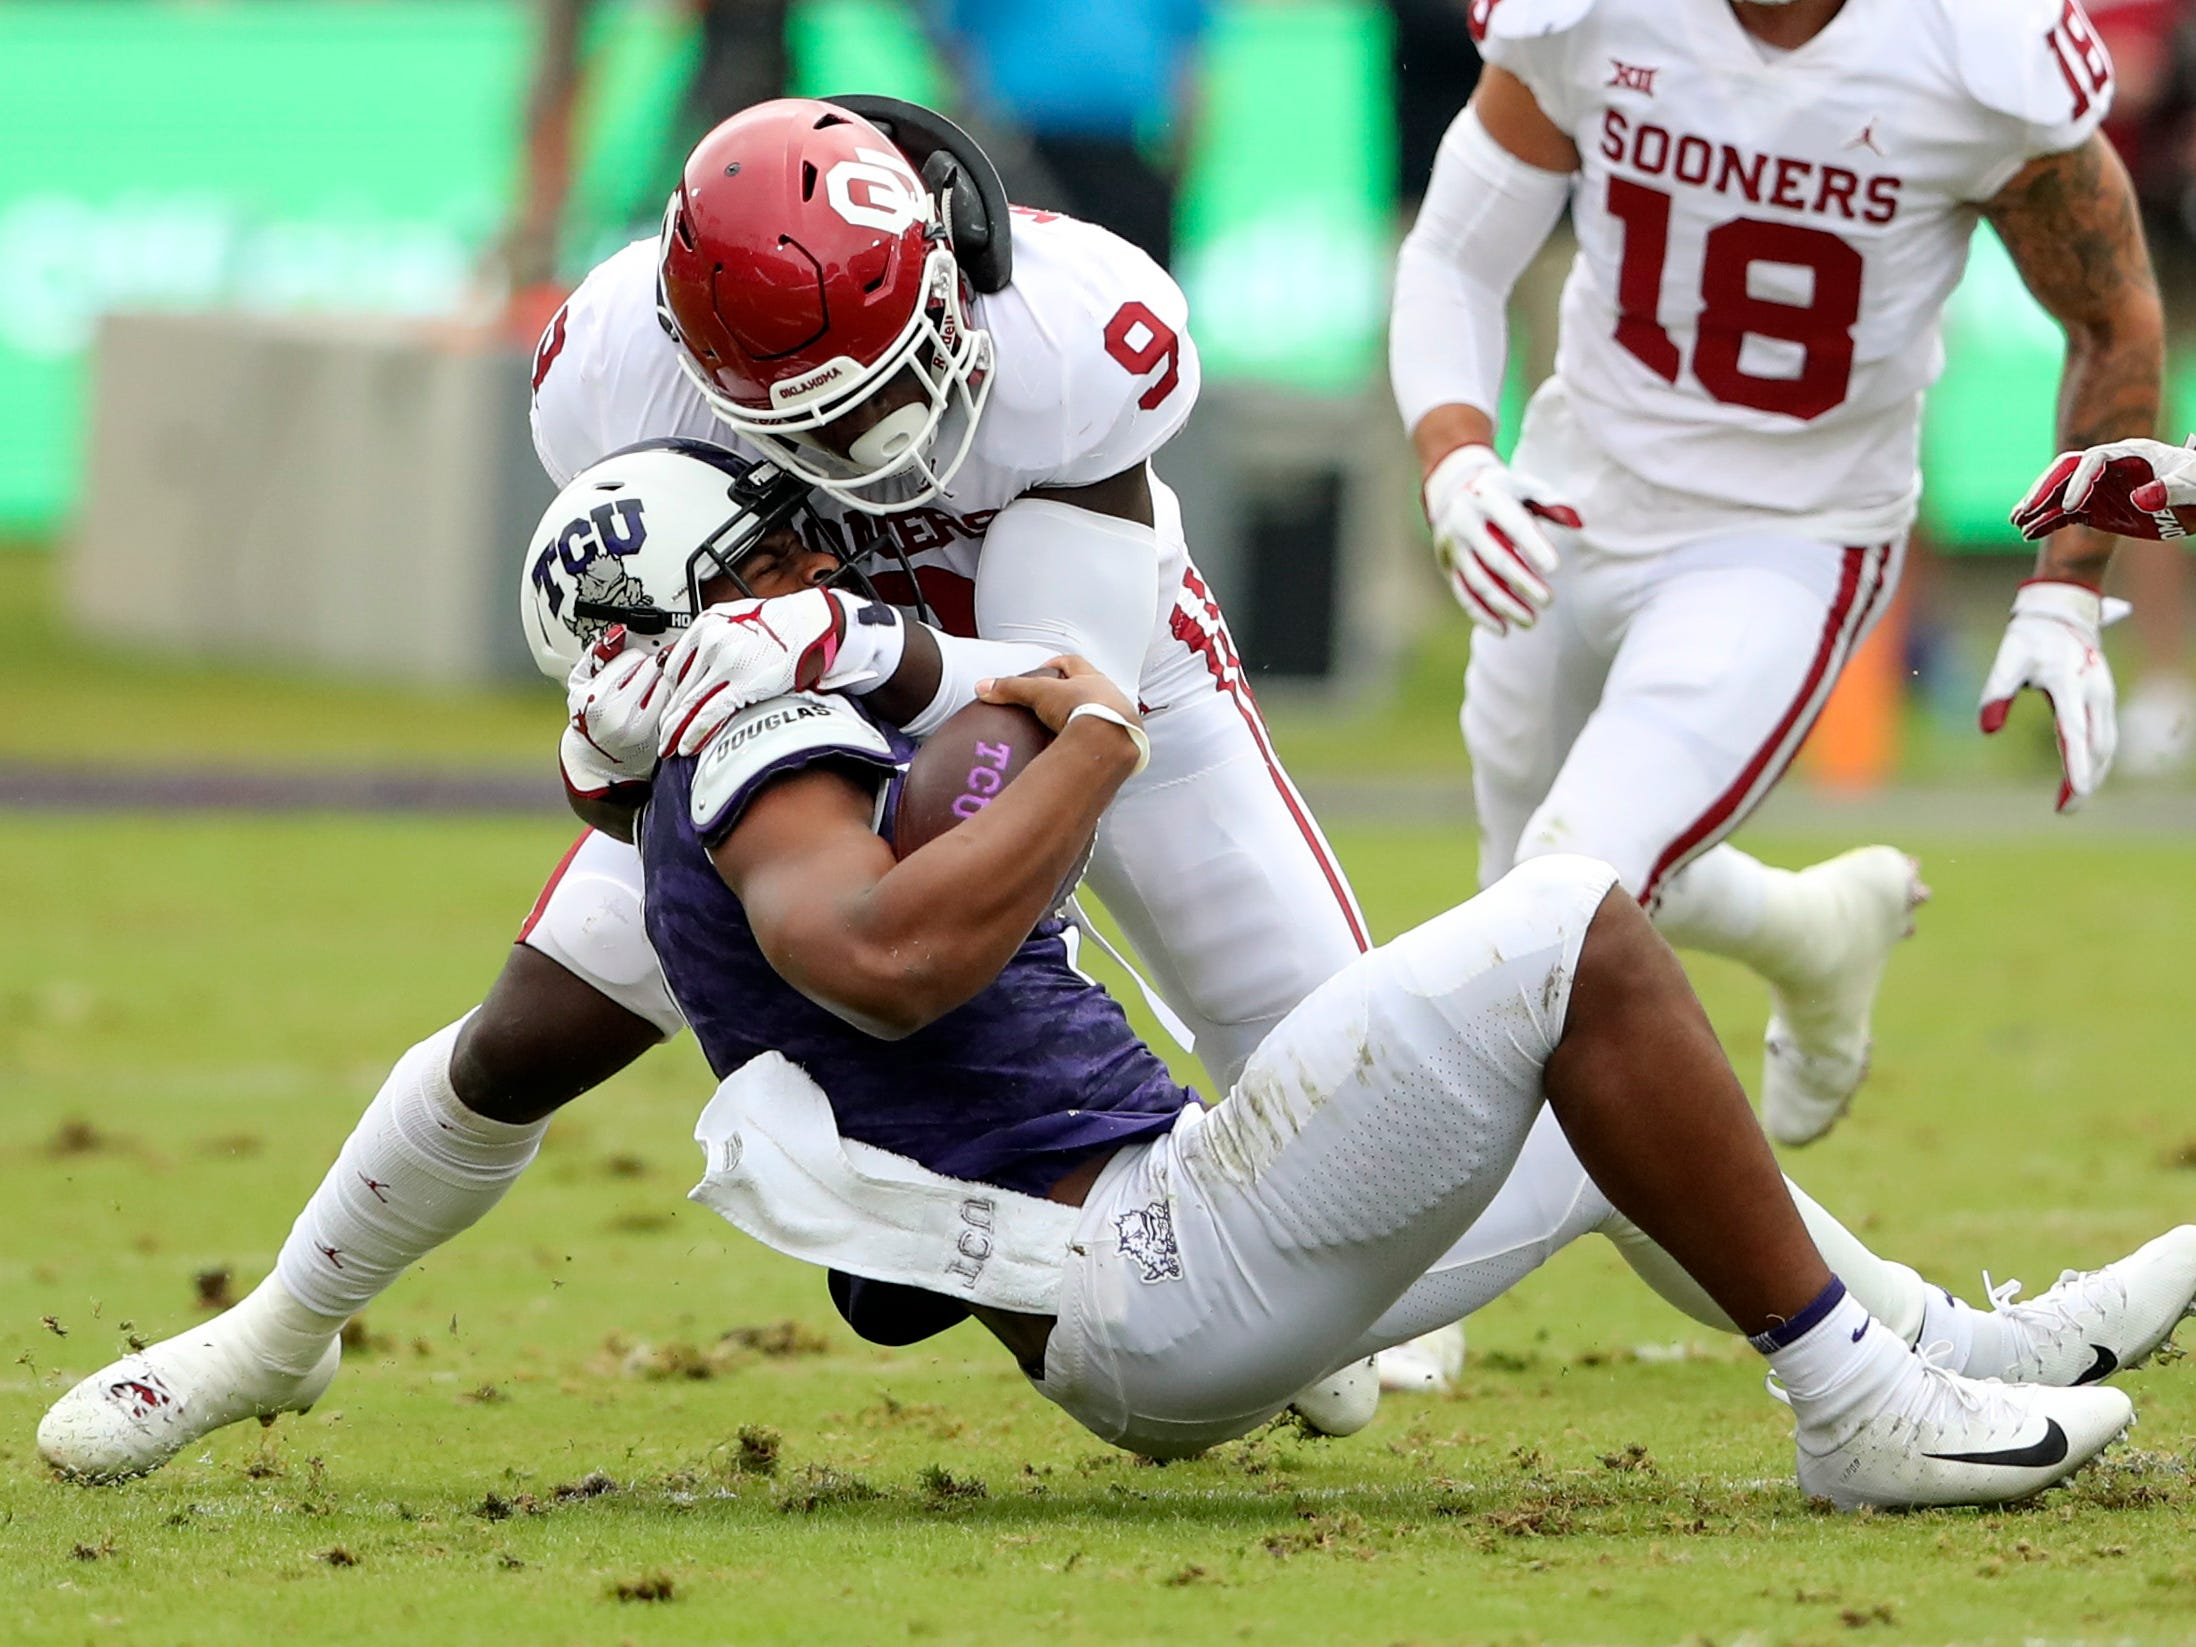 Oklahoma Sooners linebacker Kenneth Murray (9) crunches TCU Horned Frogs quarterback Shawn Robinson during the first quarter at Amon G. Carter Stadium.